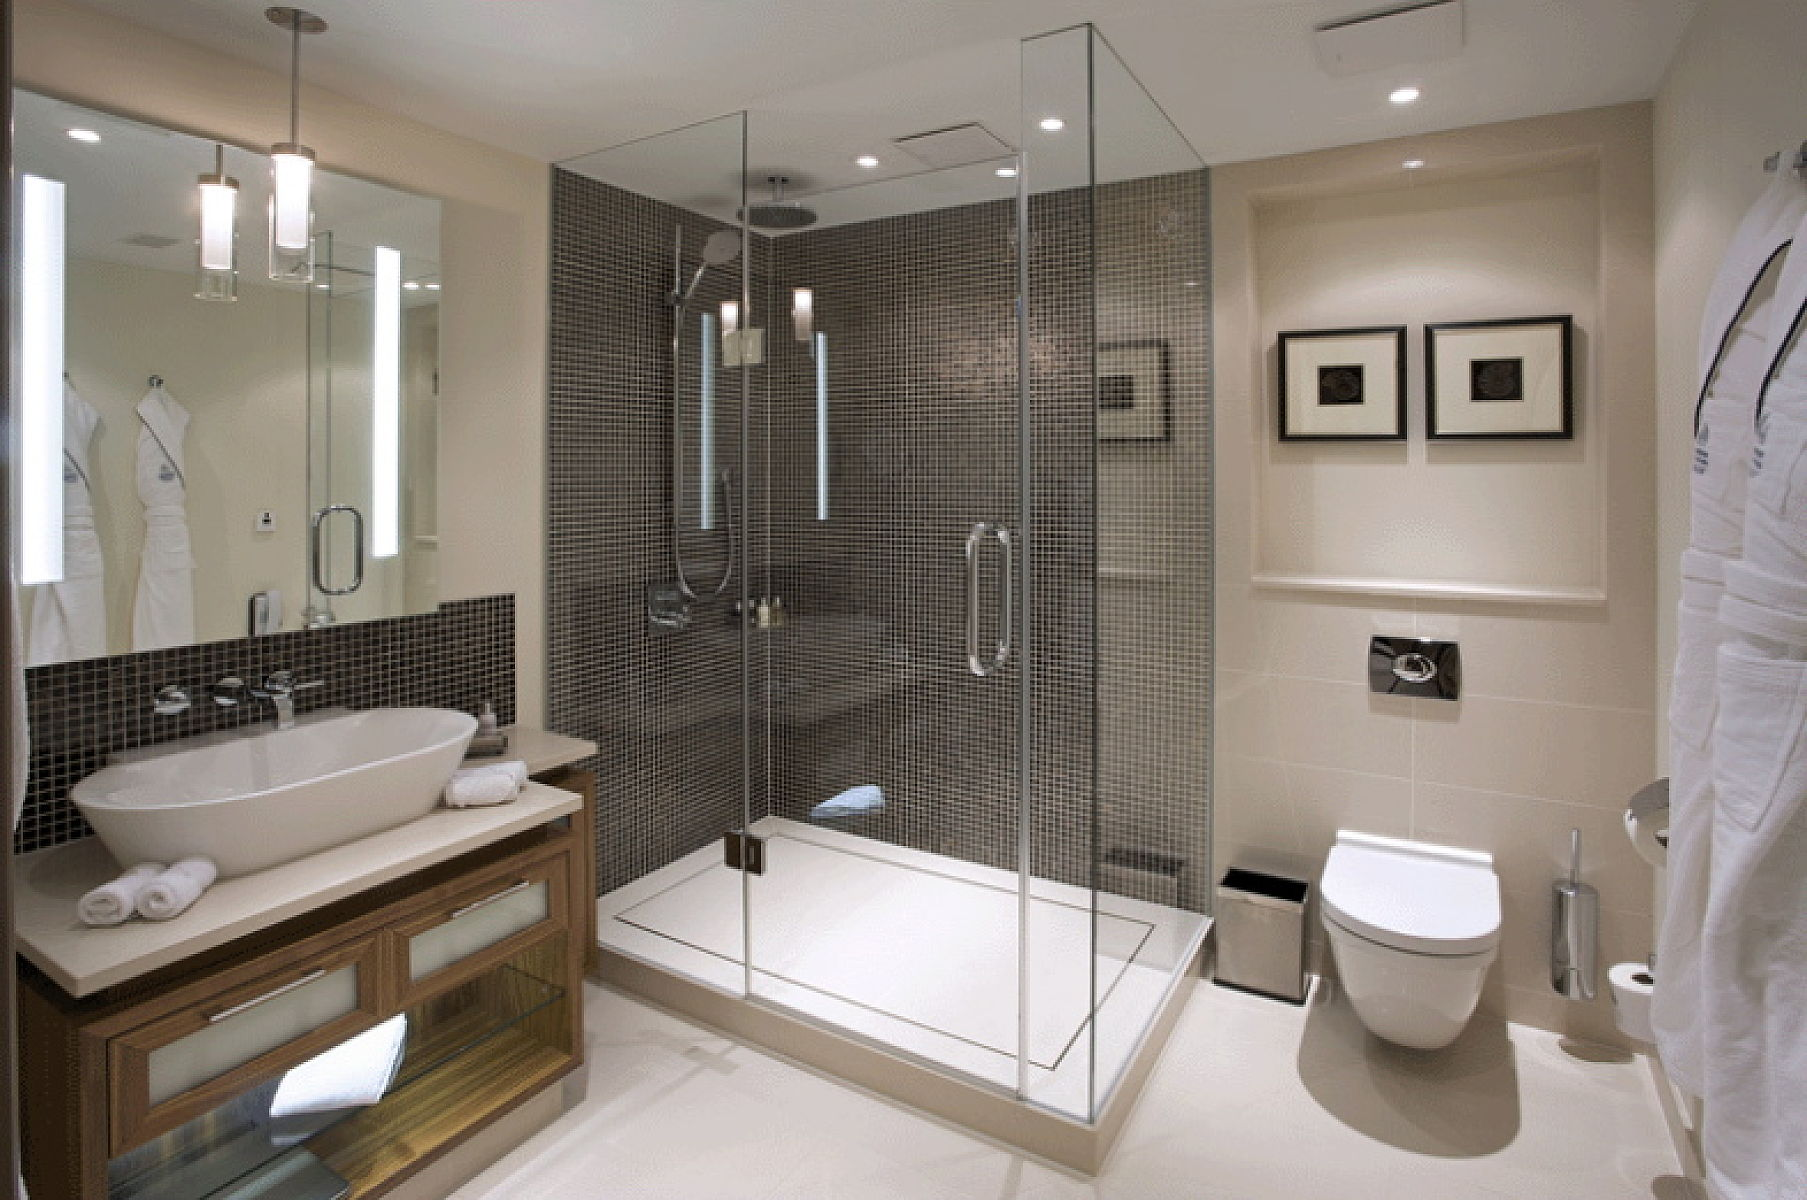 Hotel bathroom vanities with LED illuminated mirror and glass shower enclosure